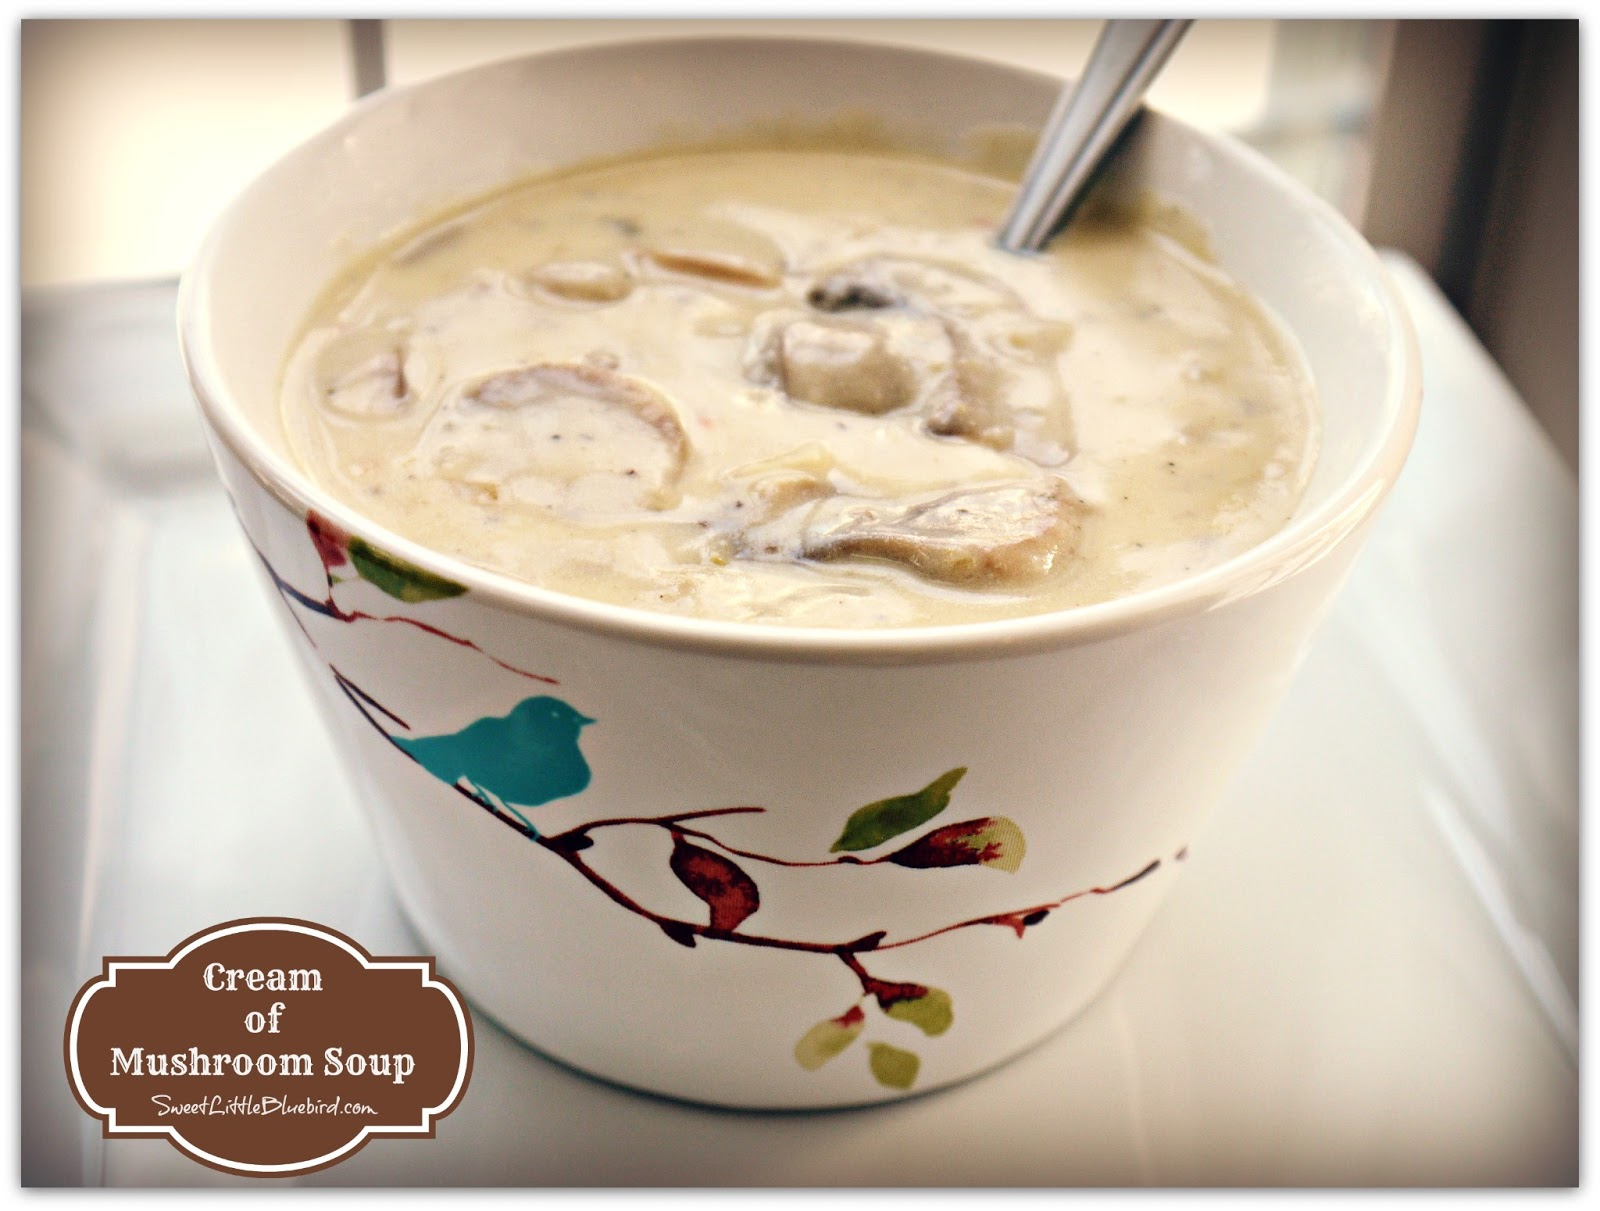 Homemade Cream of Mushroom Soup!